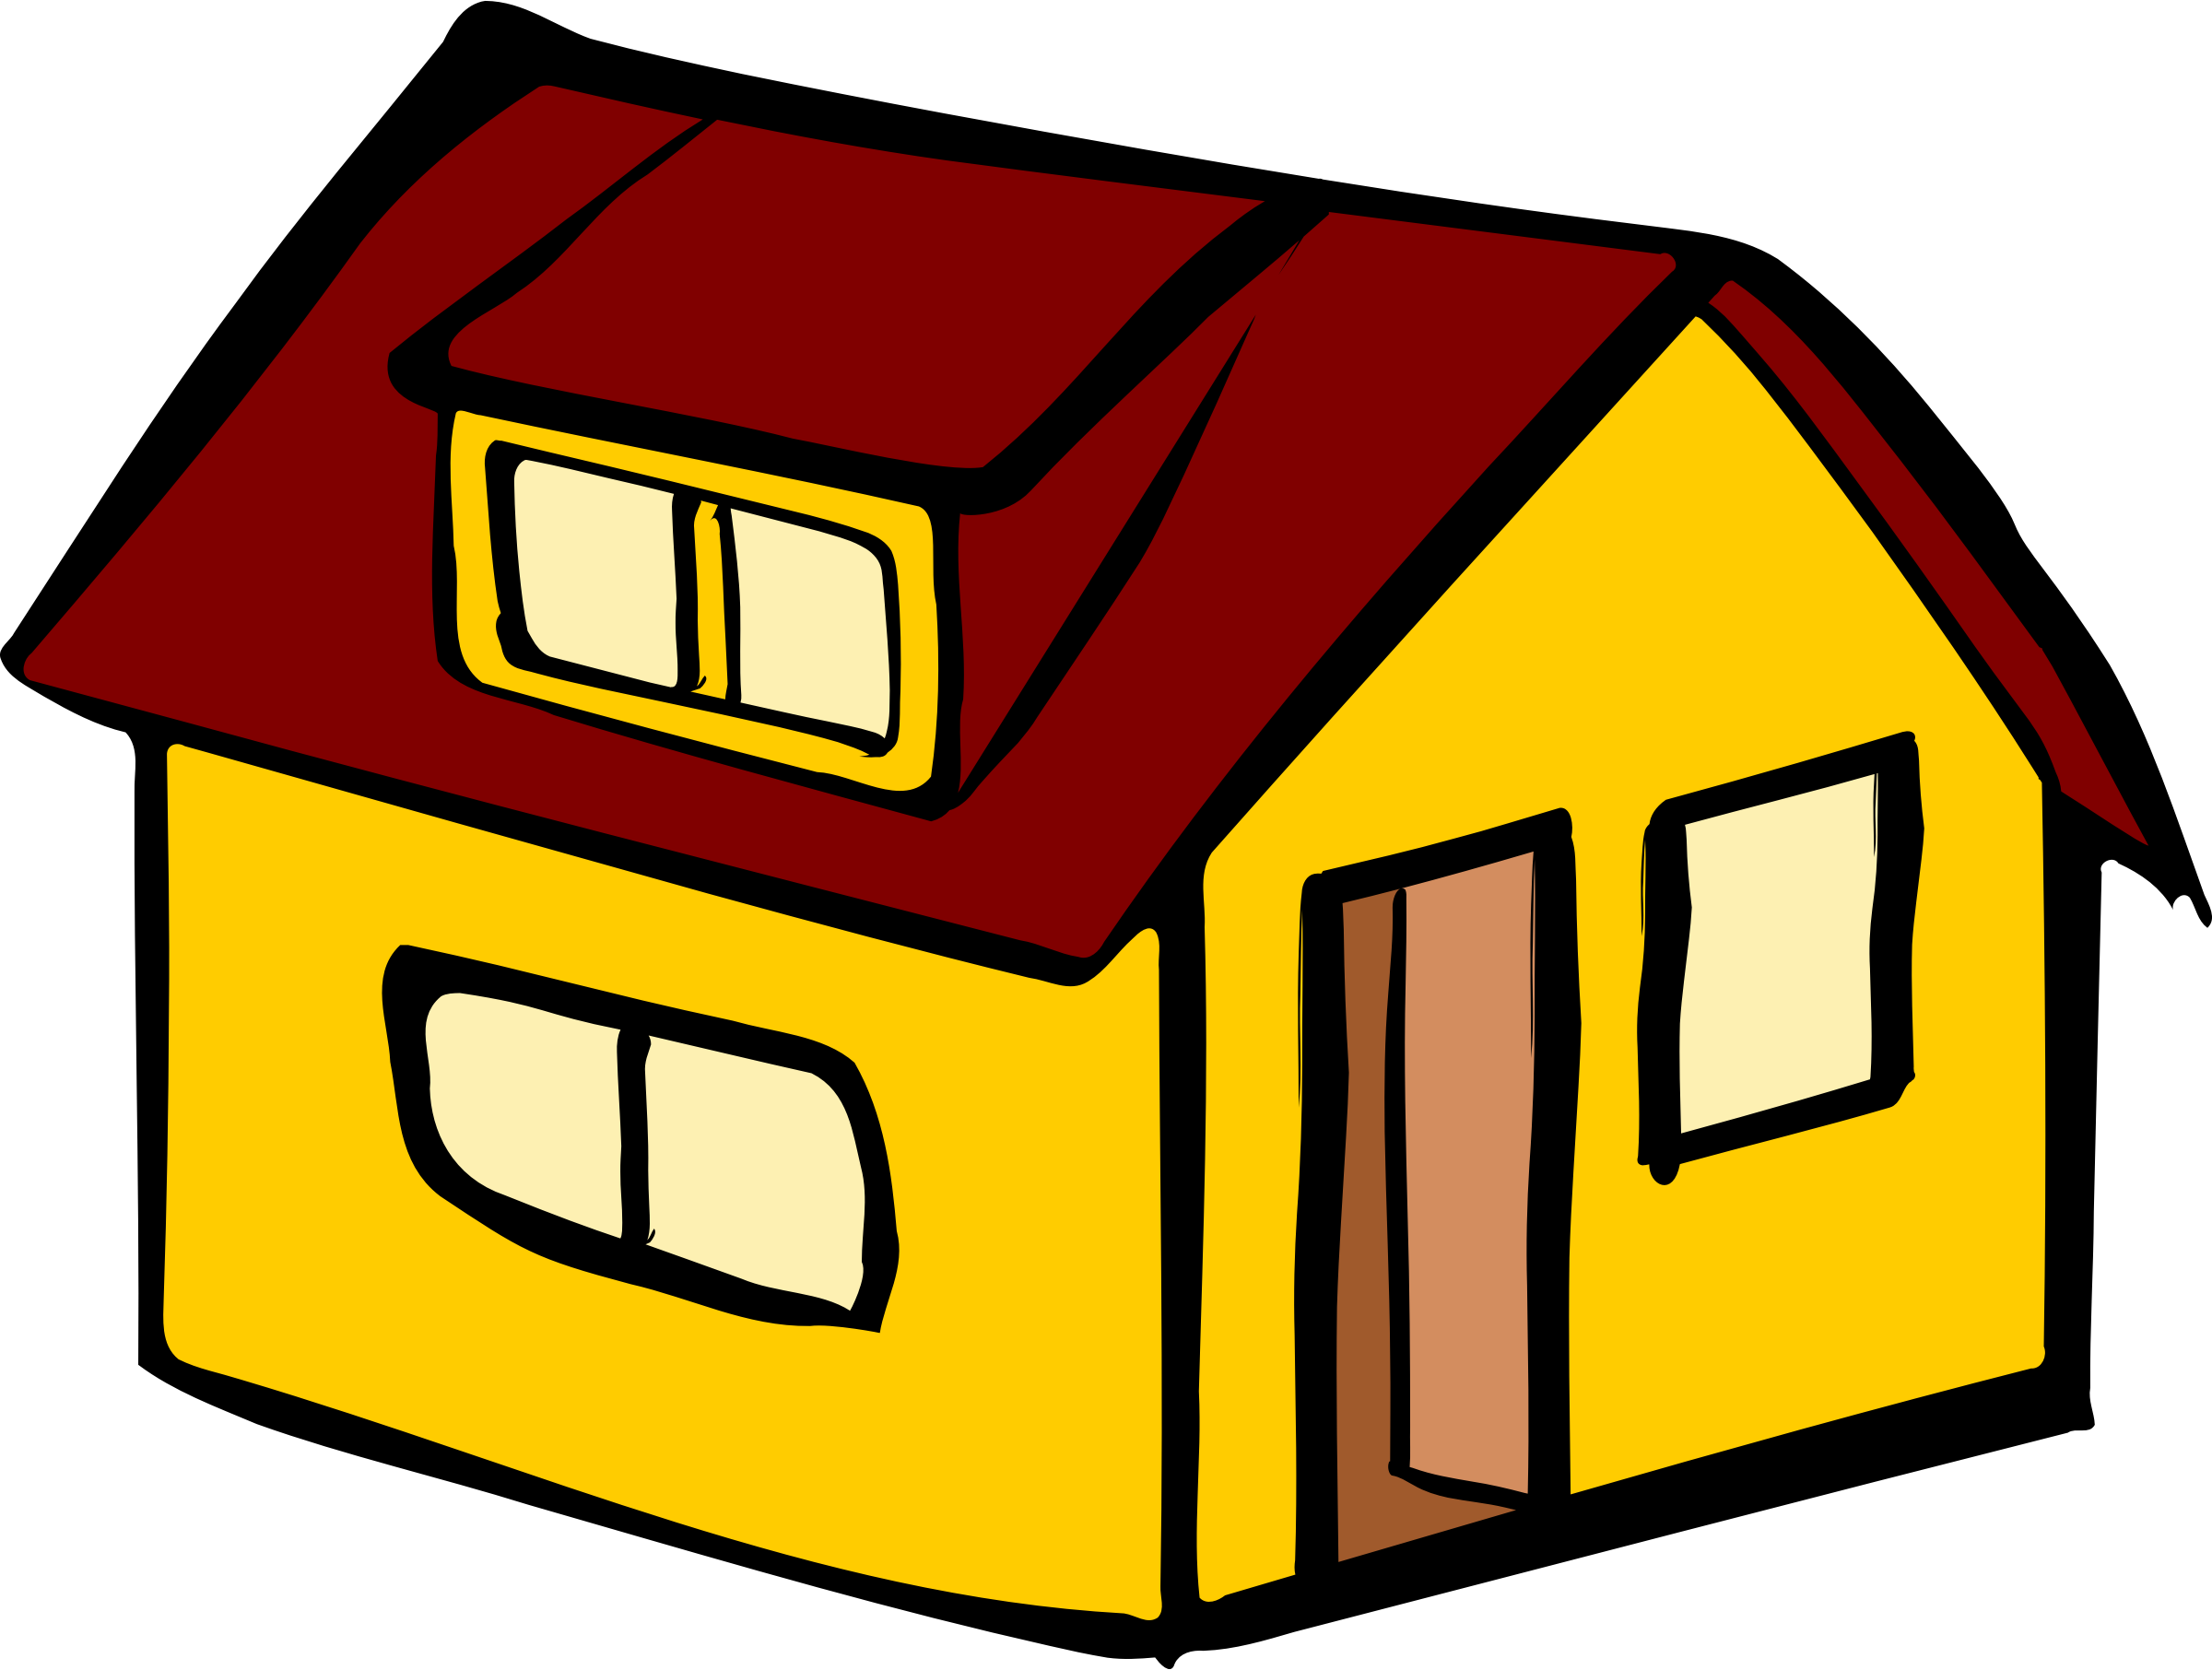 Hosue clipart yellow Yellow detached detached house Yellow